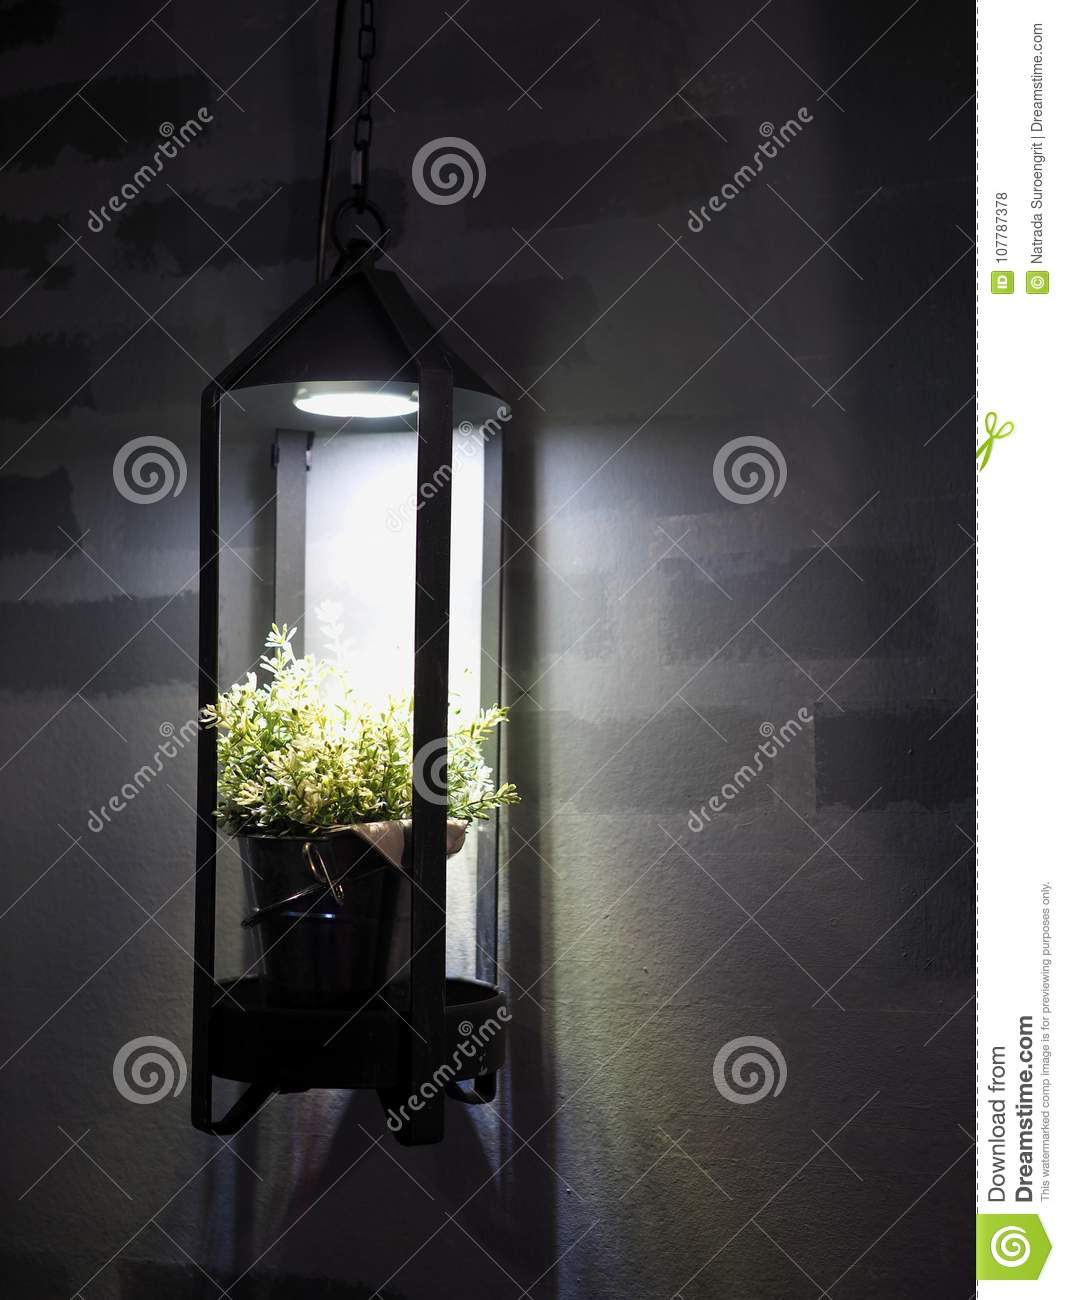 Shiny In The Dark Stock Photo Image Of Nature Background 107787378